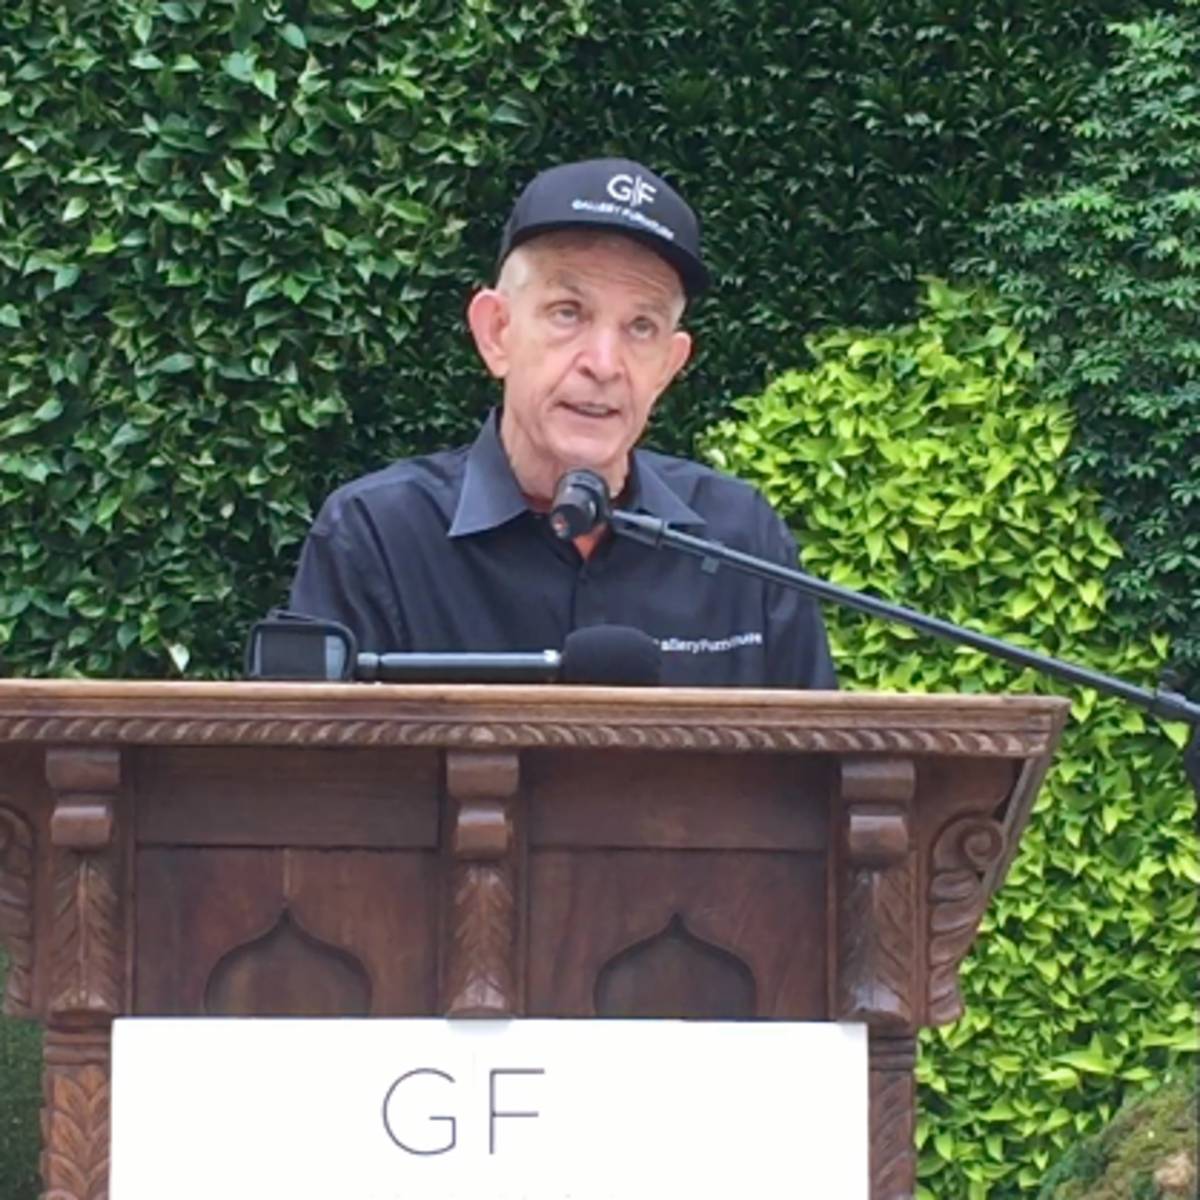 Houston, Gallery Furniture Grand Parkway Opening, June 2015, Jim McIngvale speaking